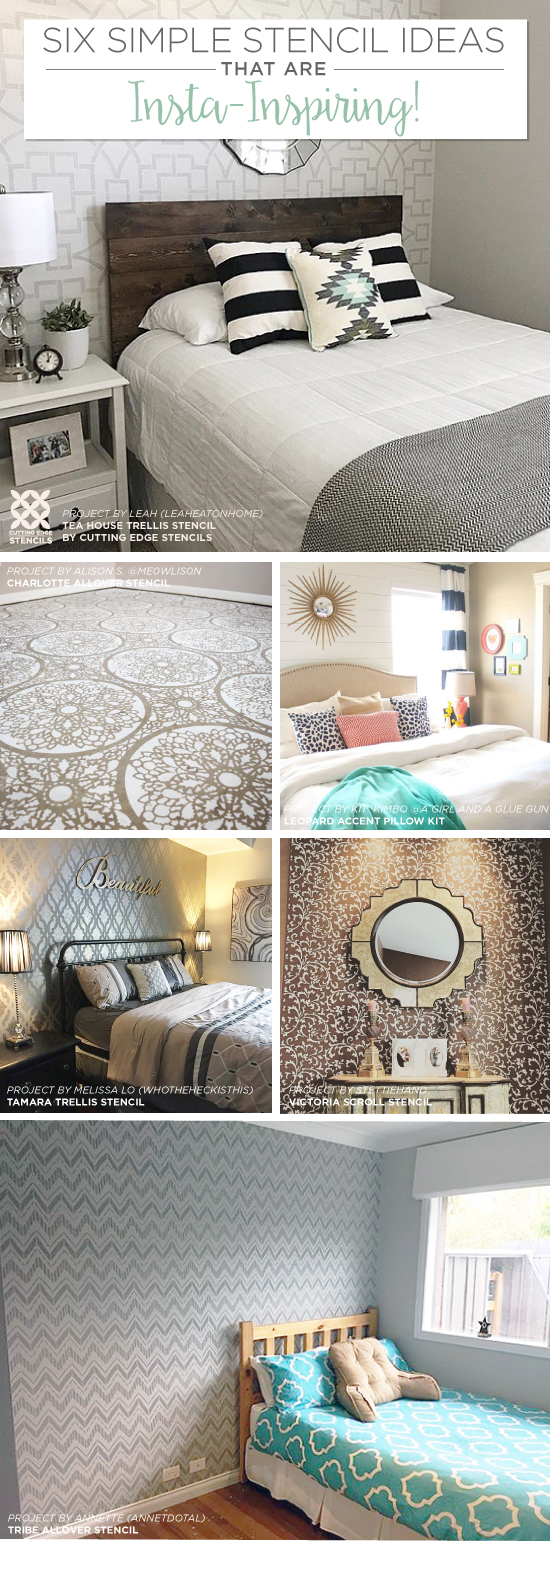 Six simple stencil ideas that are insta inspiring stencil stories cutting edge stencils shares easy and affordable diy decorating ideas using stencil patterns http amipublicfo Images